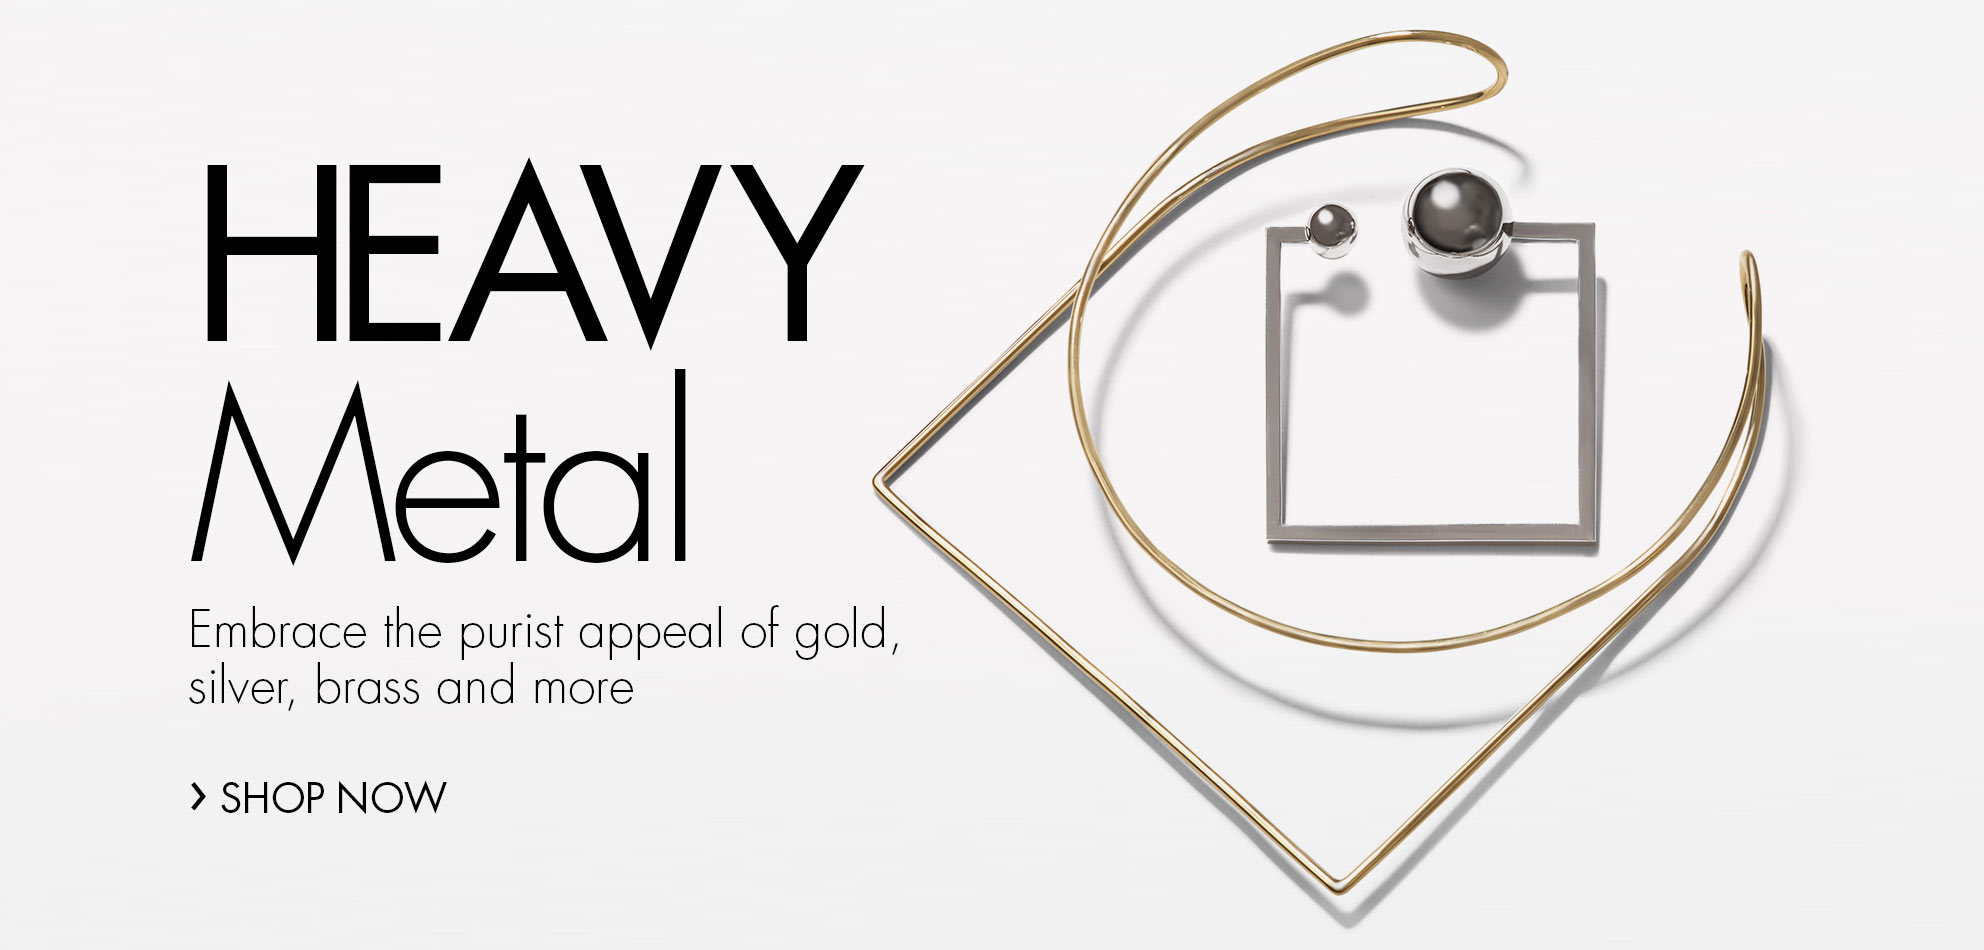 Heavy Metal | Embrace the purist appeal of gold, silver, brass and more